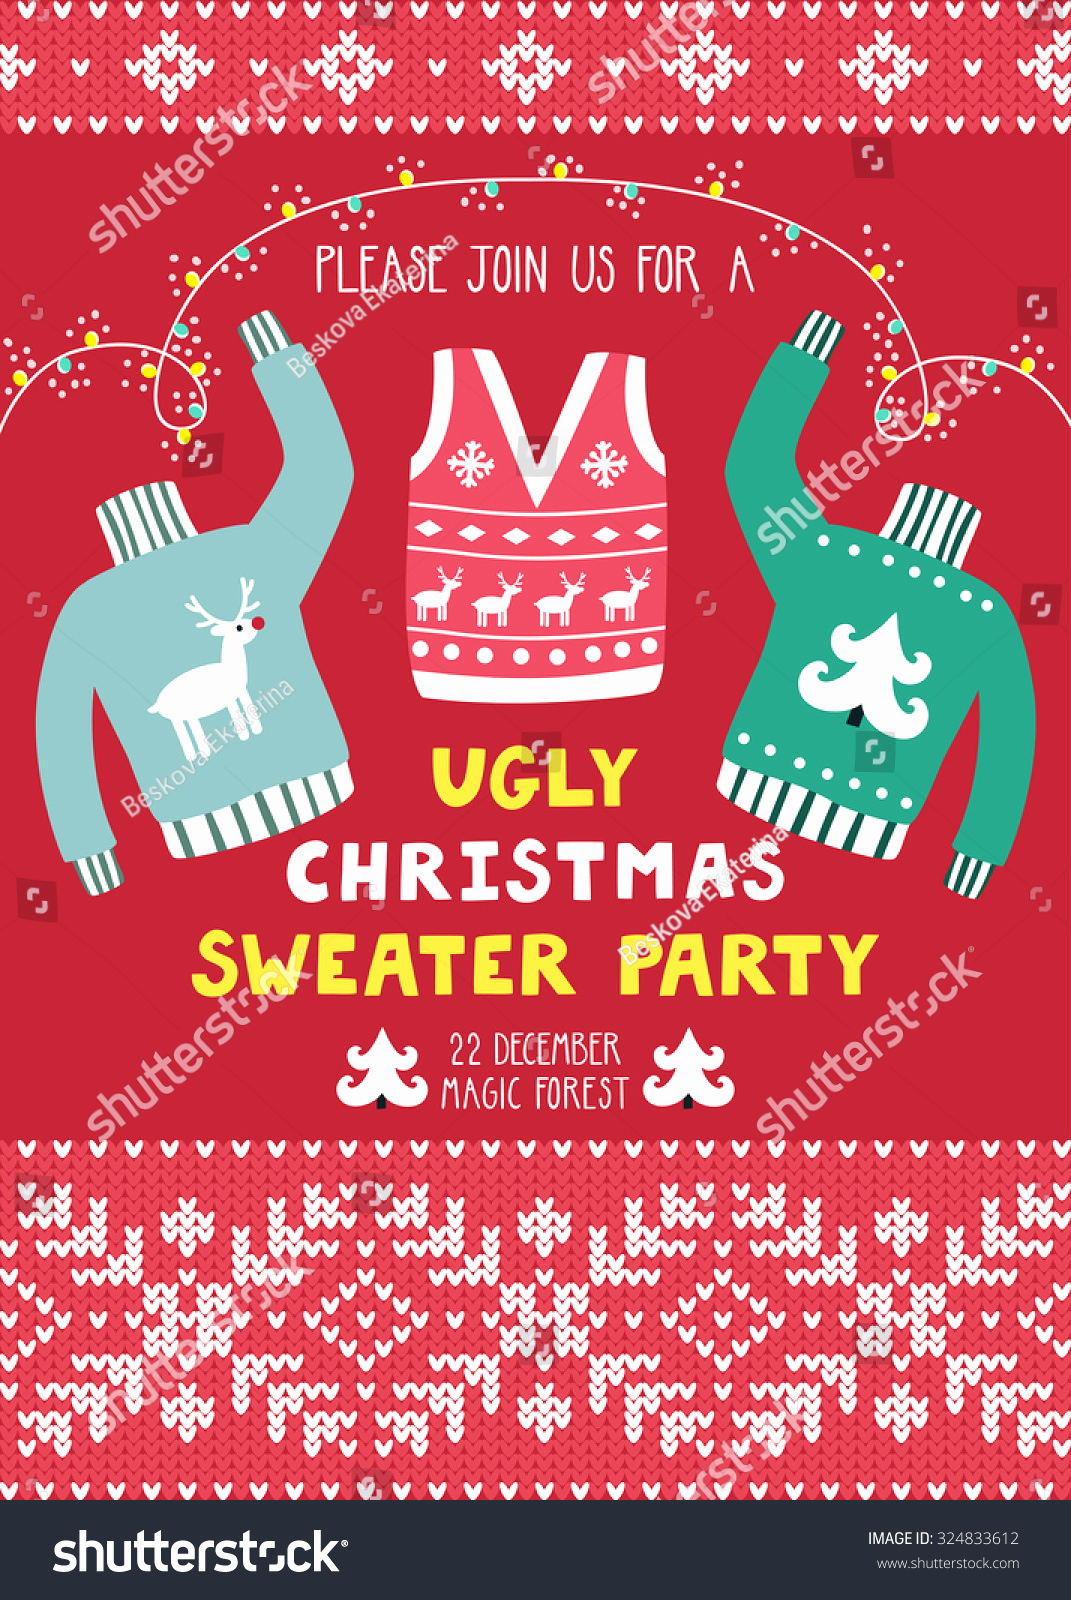 Ugly Sweater Invitation Template Free Beautiful Vector Invitation Template with Ugly Sweaters